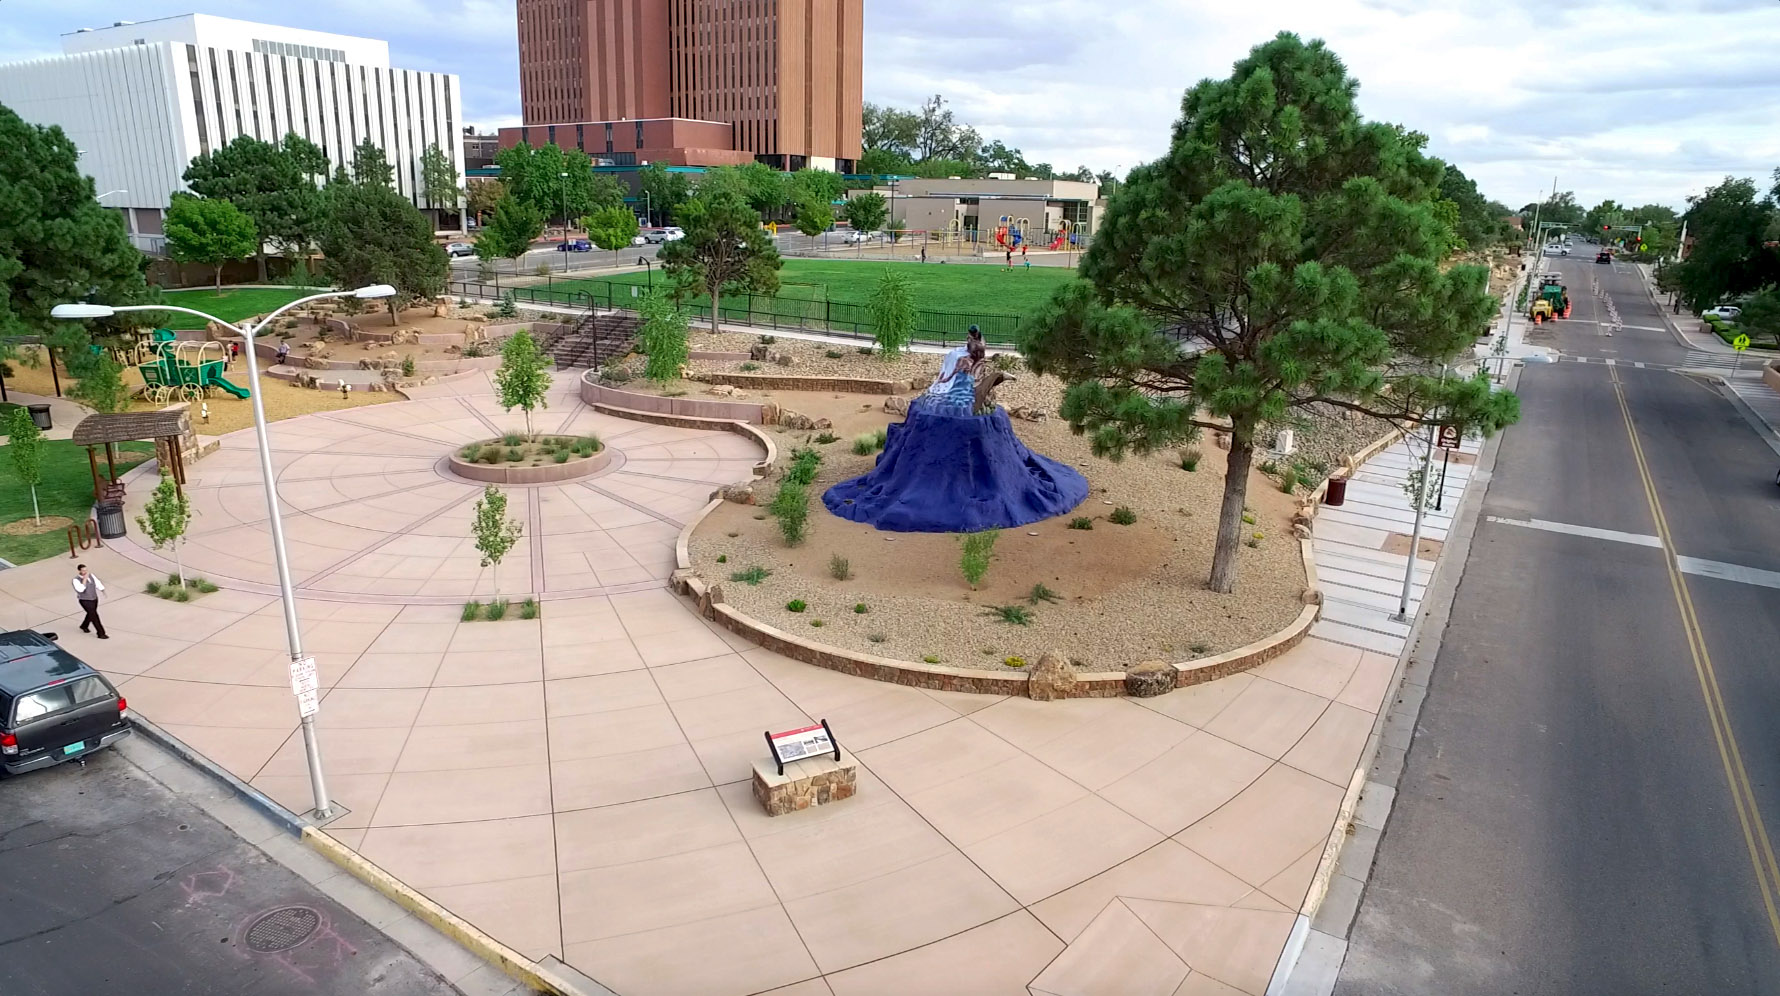 Overview of Martineztown Park, with 'Southwest Pieta' by Luis Jimenez (http://www.cabq.gov/publicart/)